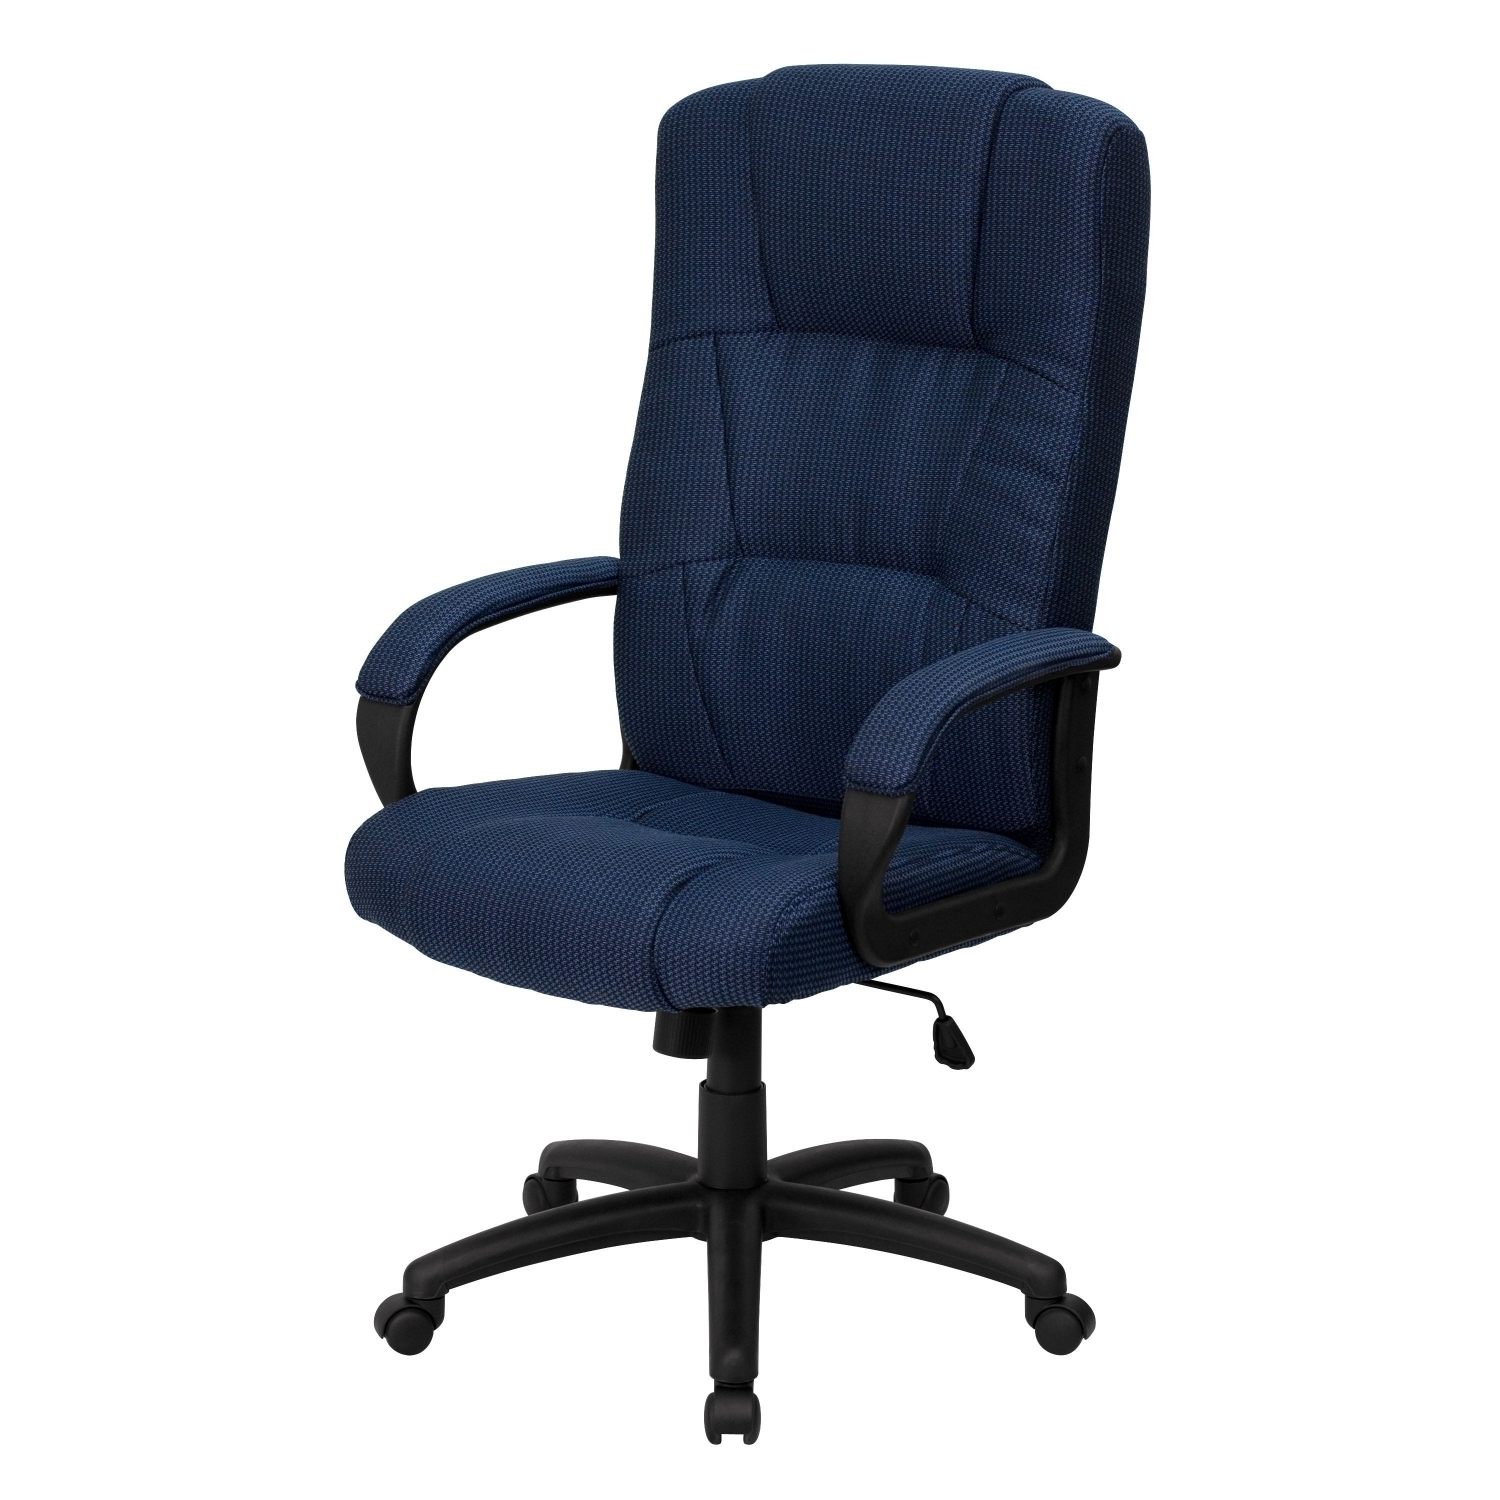 Furniture Bt 9022 Bl Gg High Back Navy Fabric Executive Office Chair With Regard To Famous